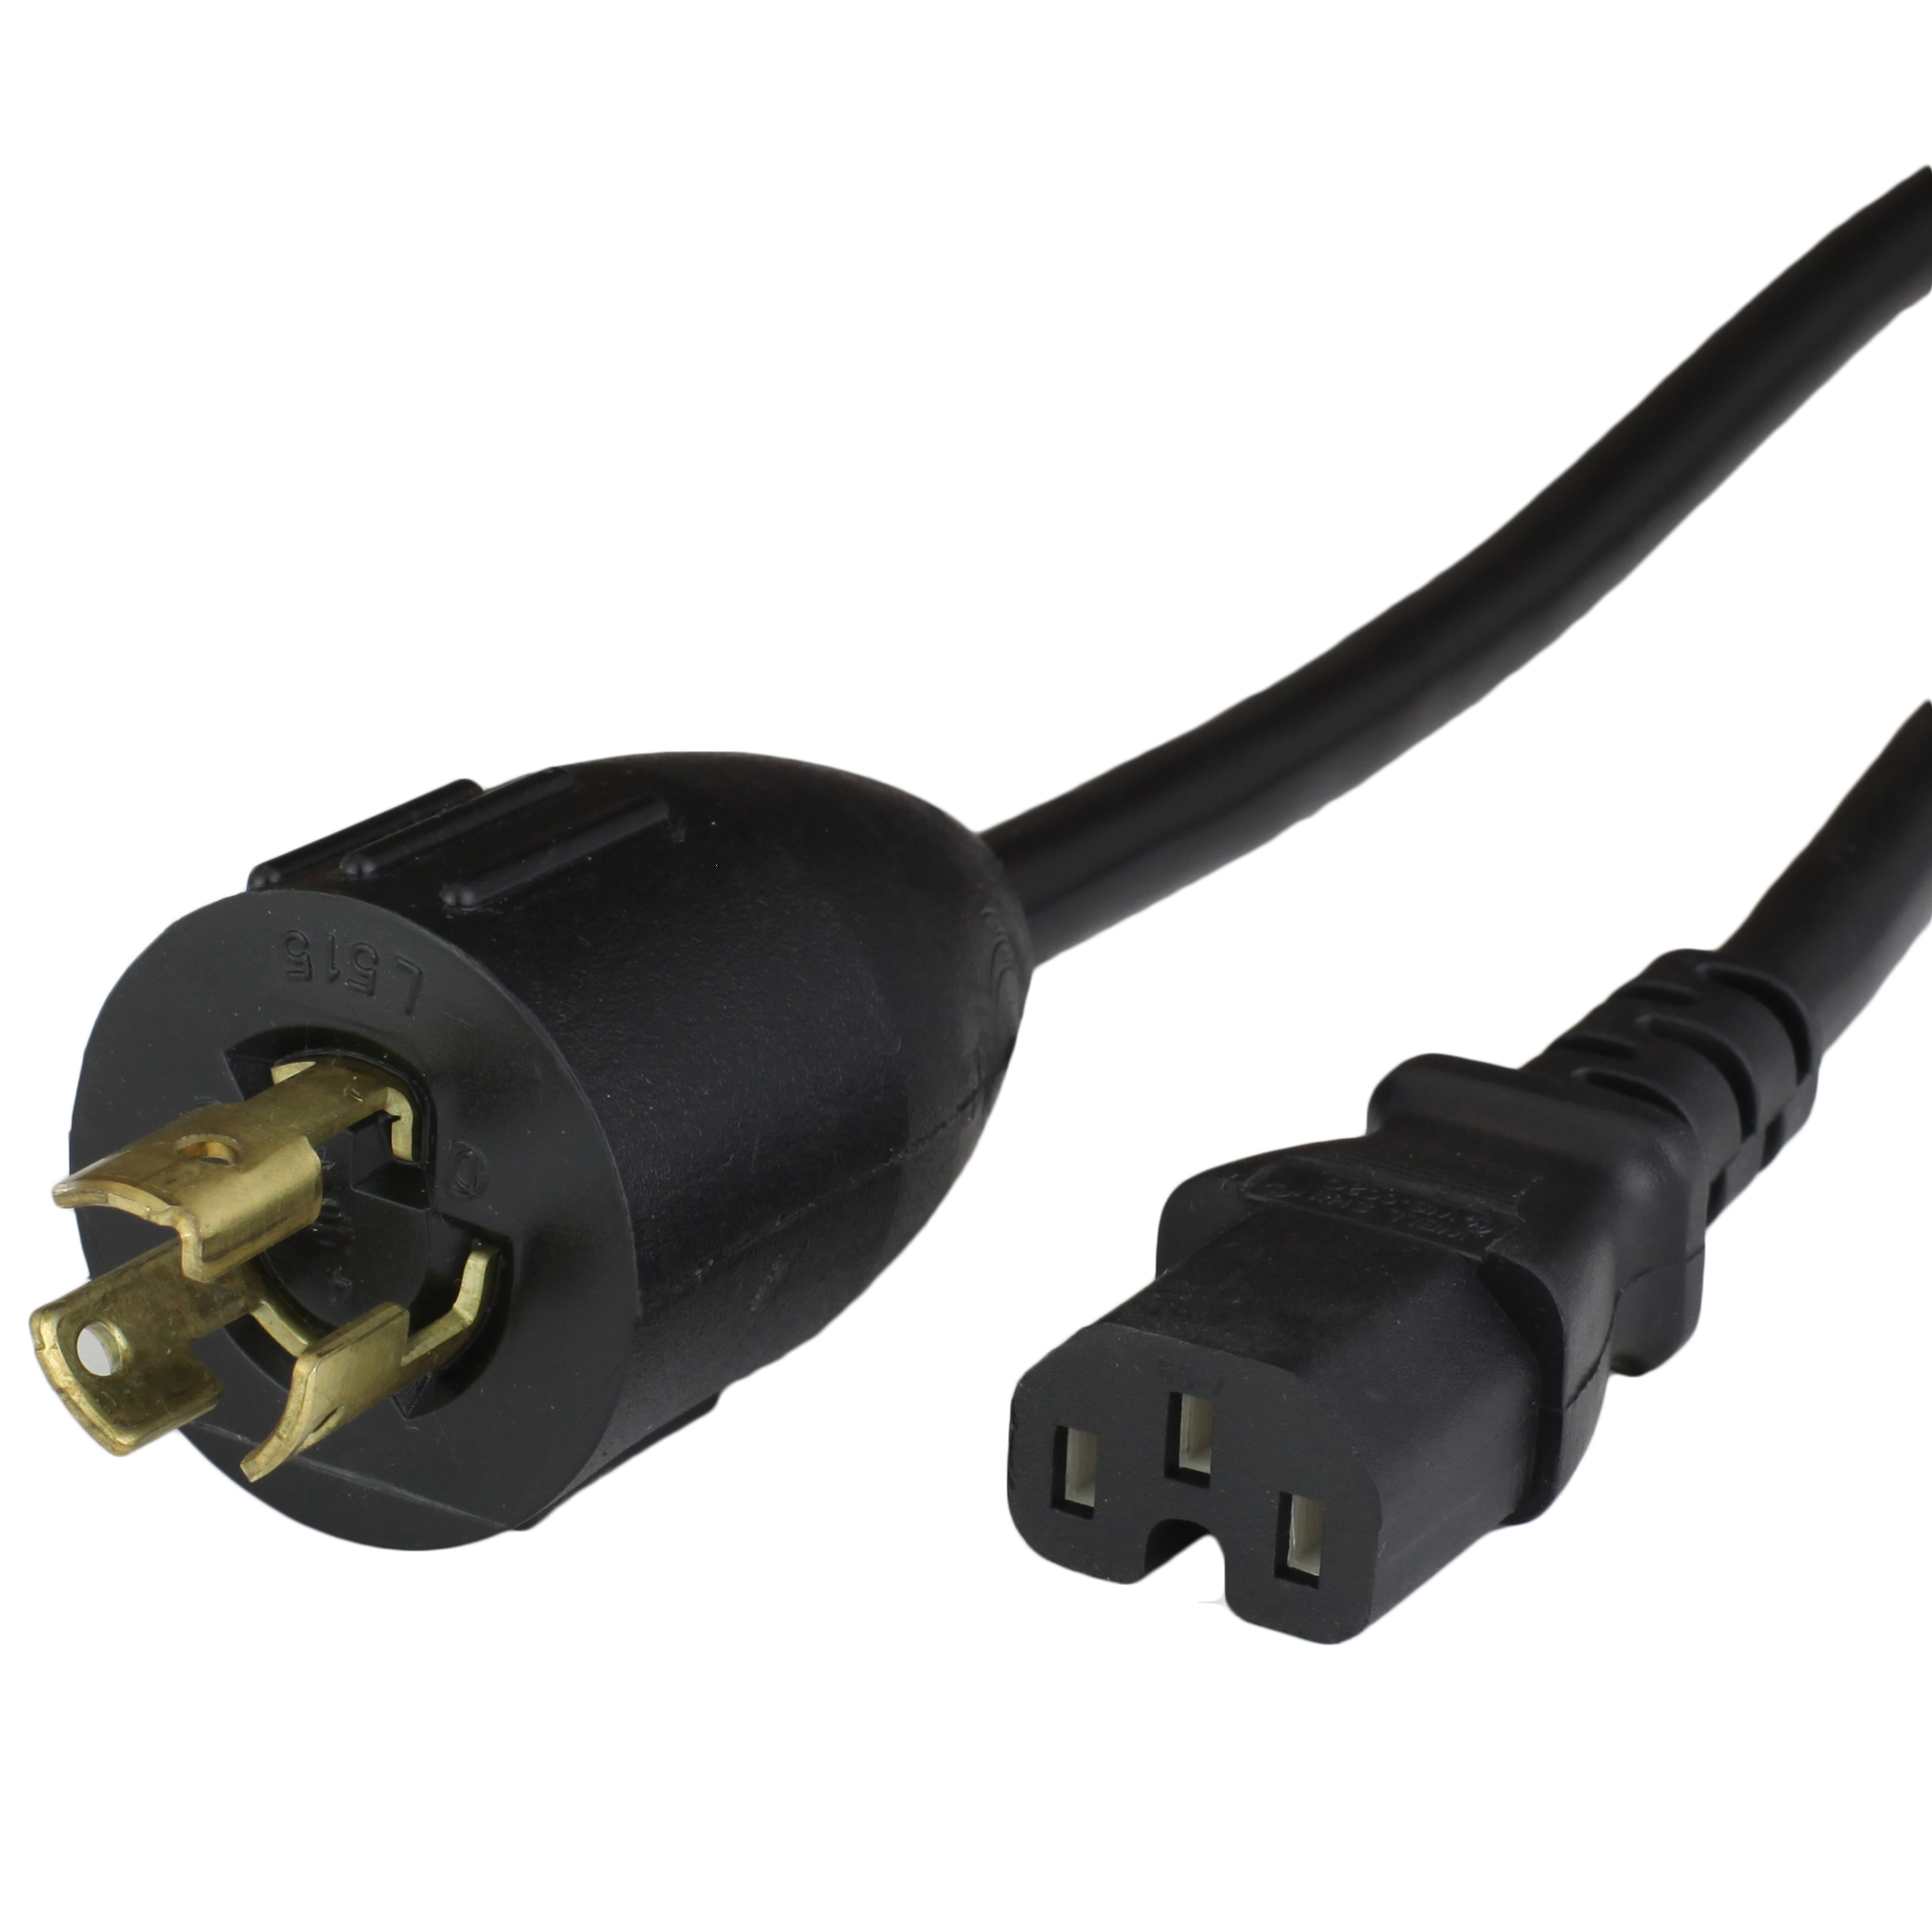 NEMA L5-15P to IEC60320 C15 Power Cords